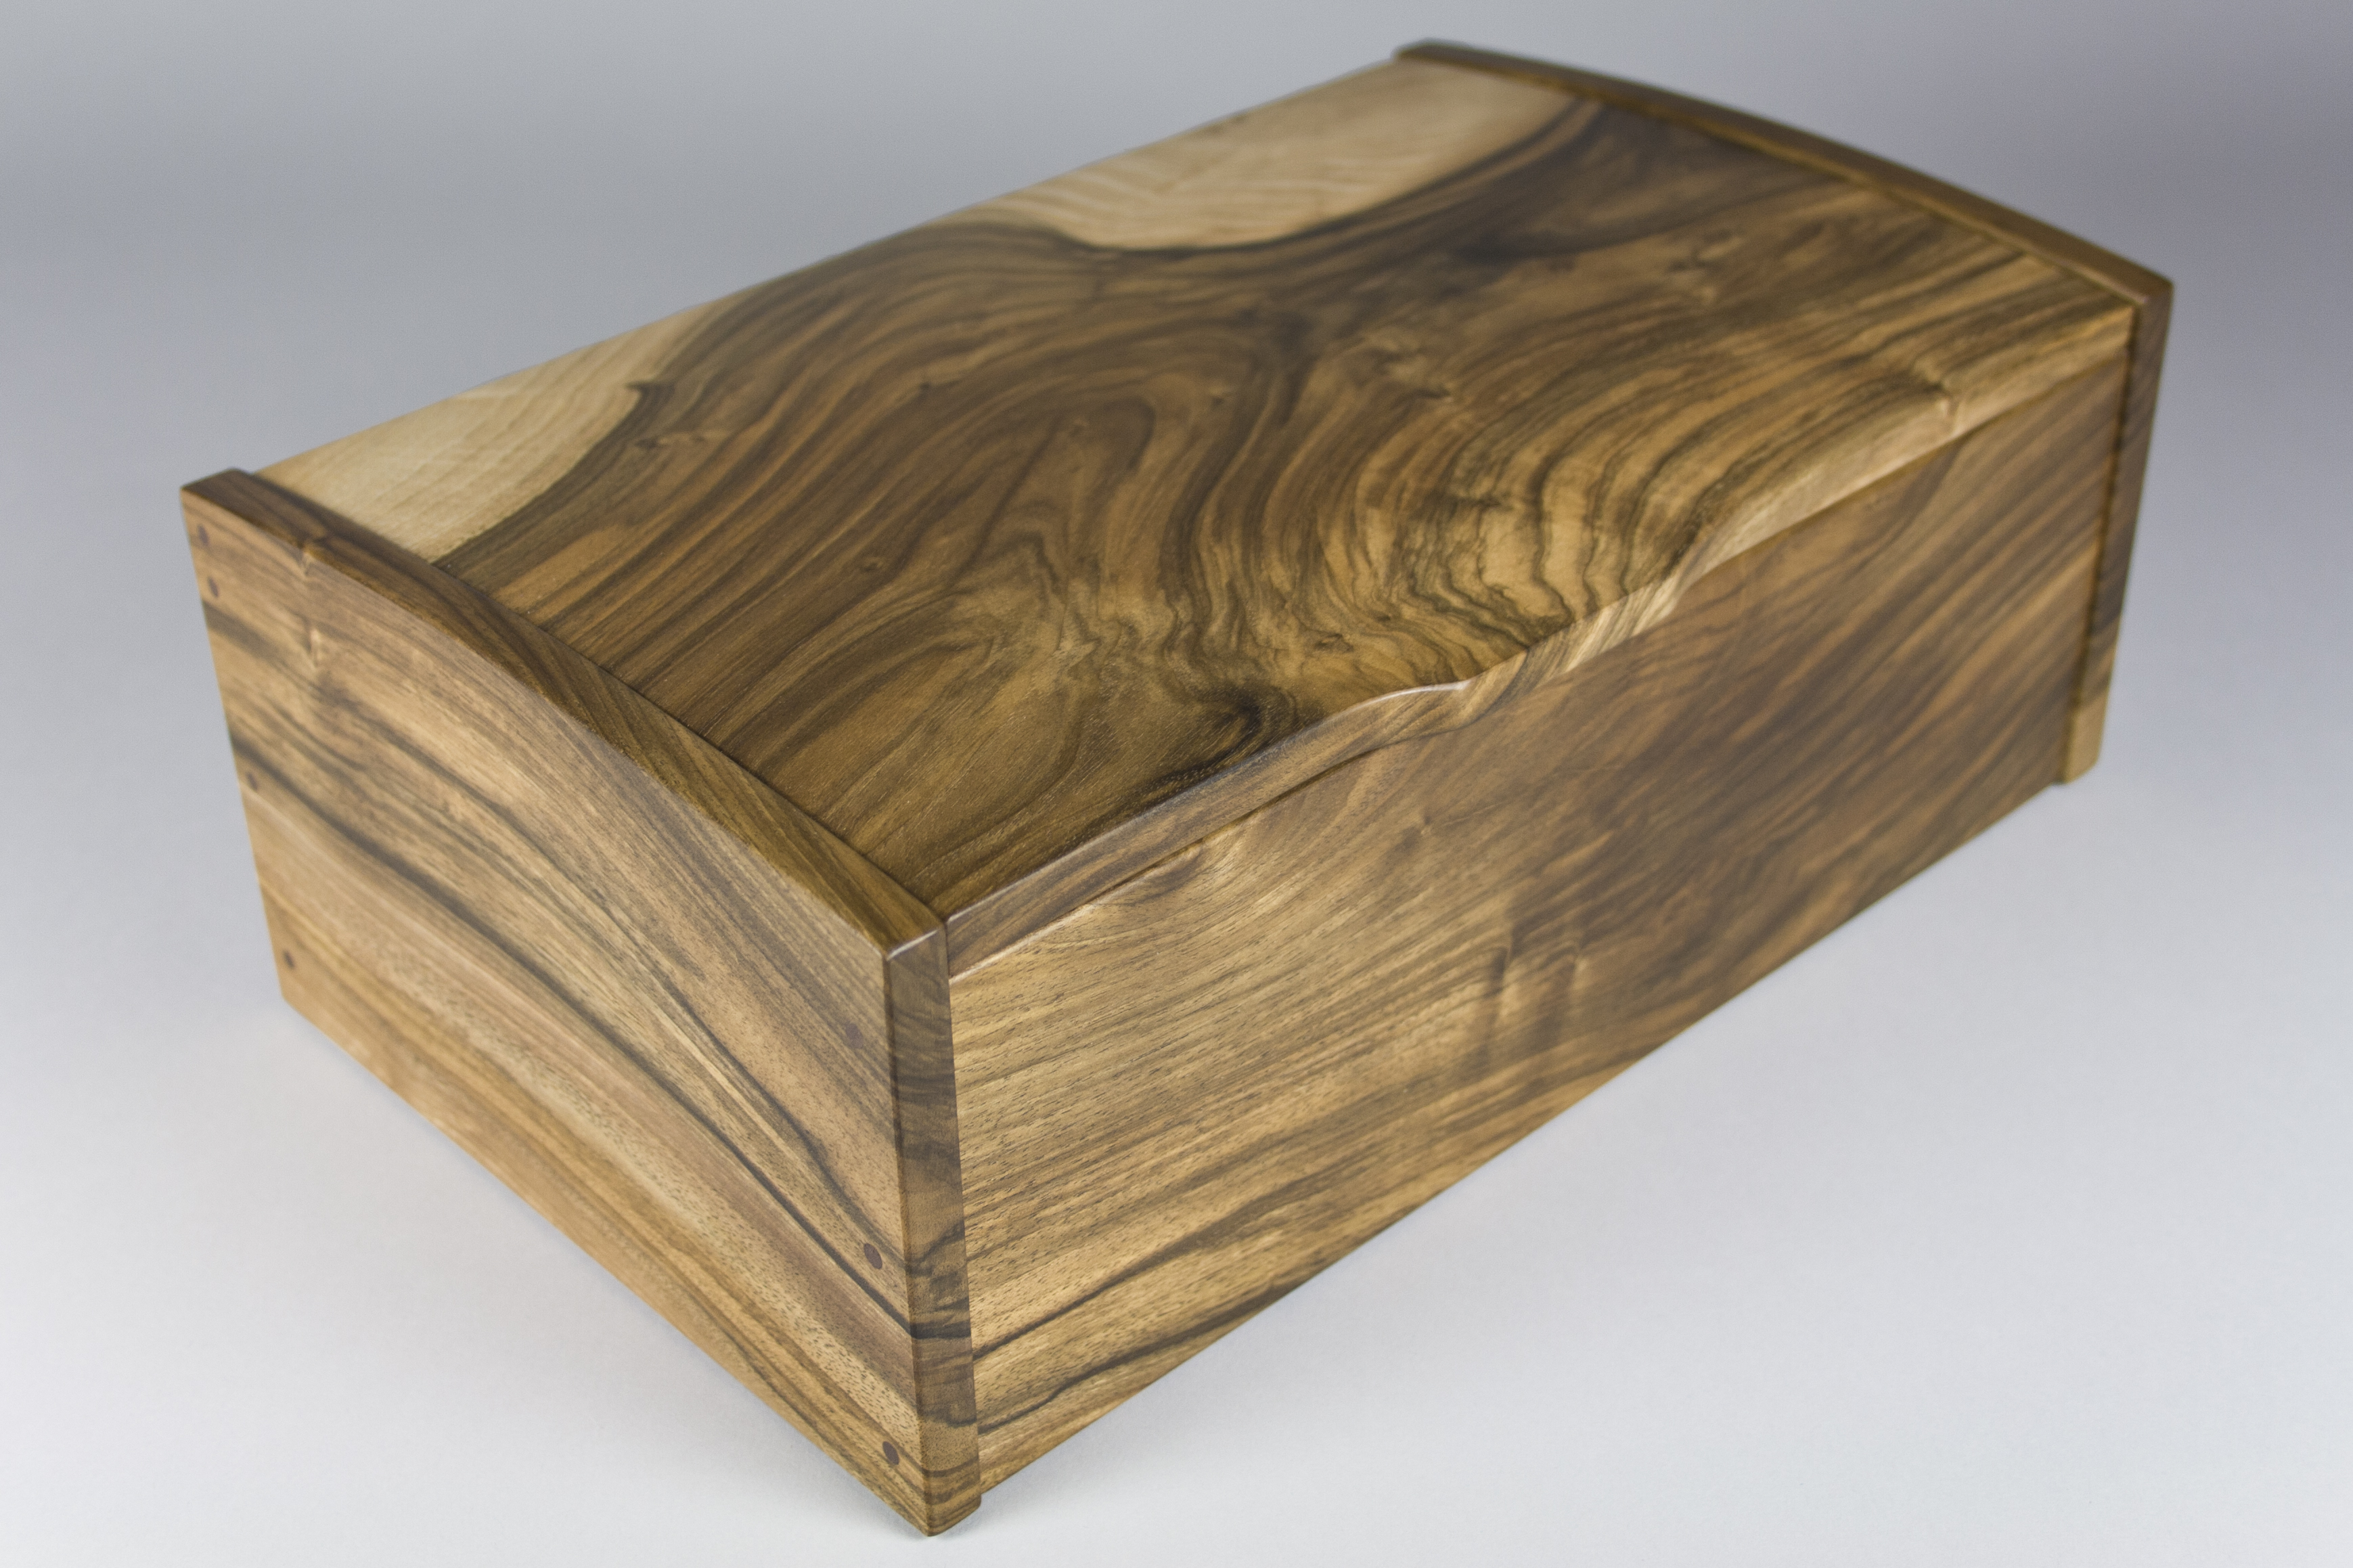 Lid of English walnut jewellery box